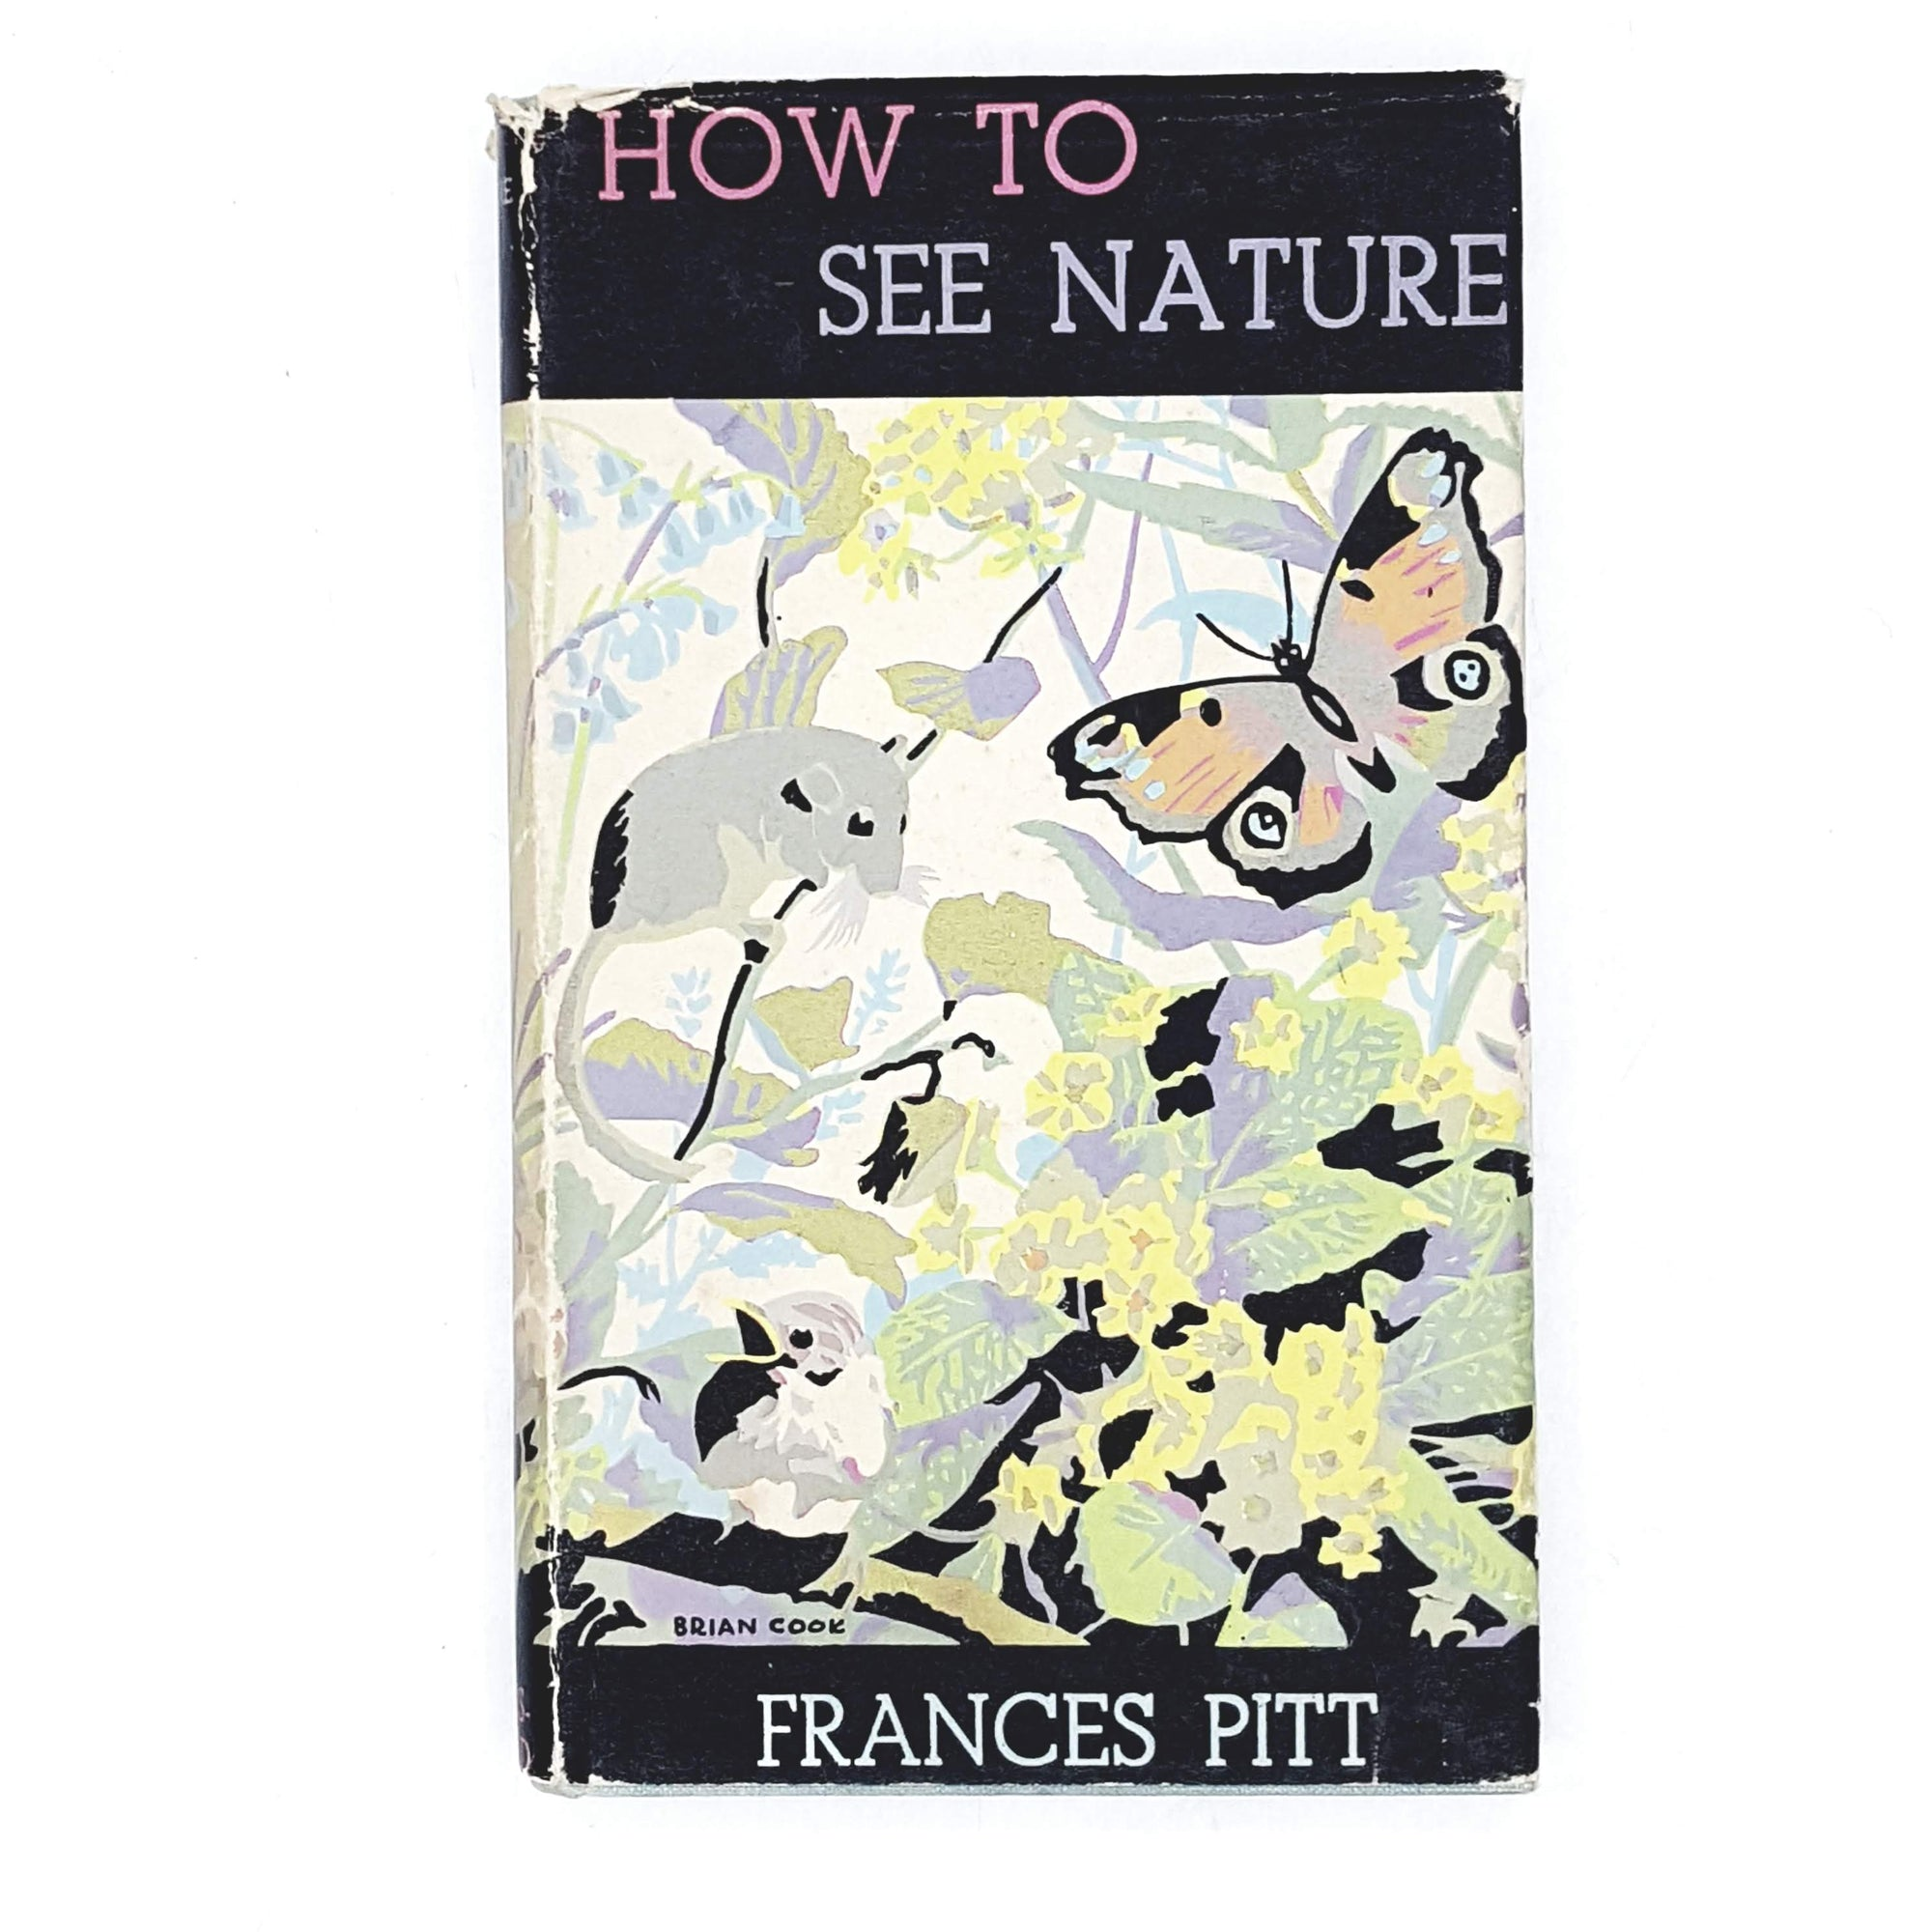 How to See Nature by Frances Pitt 1940